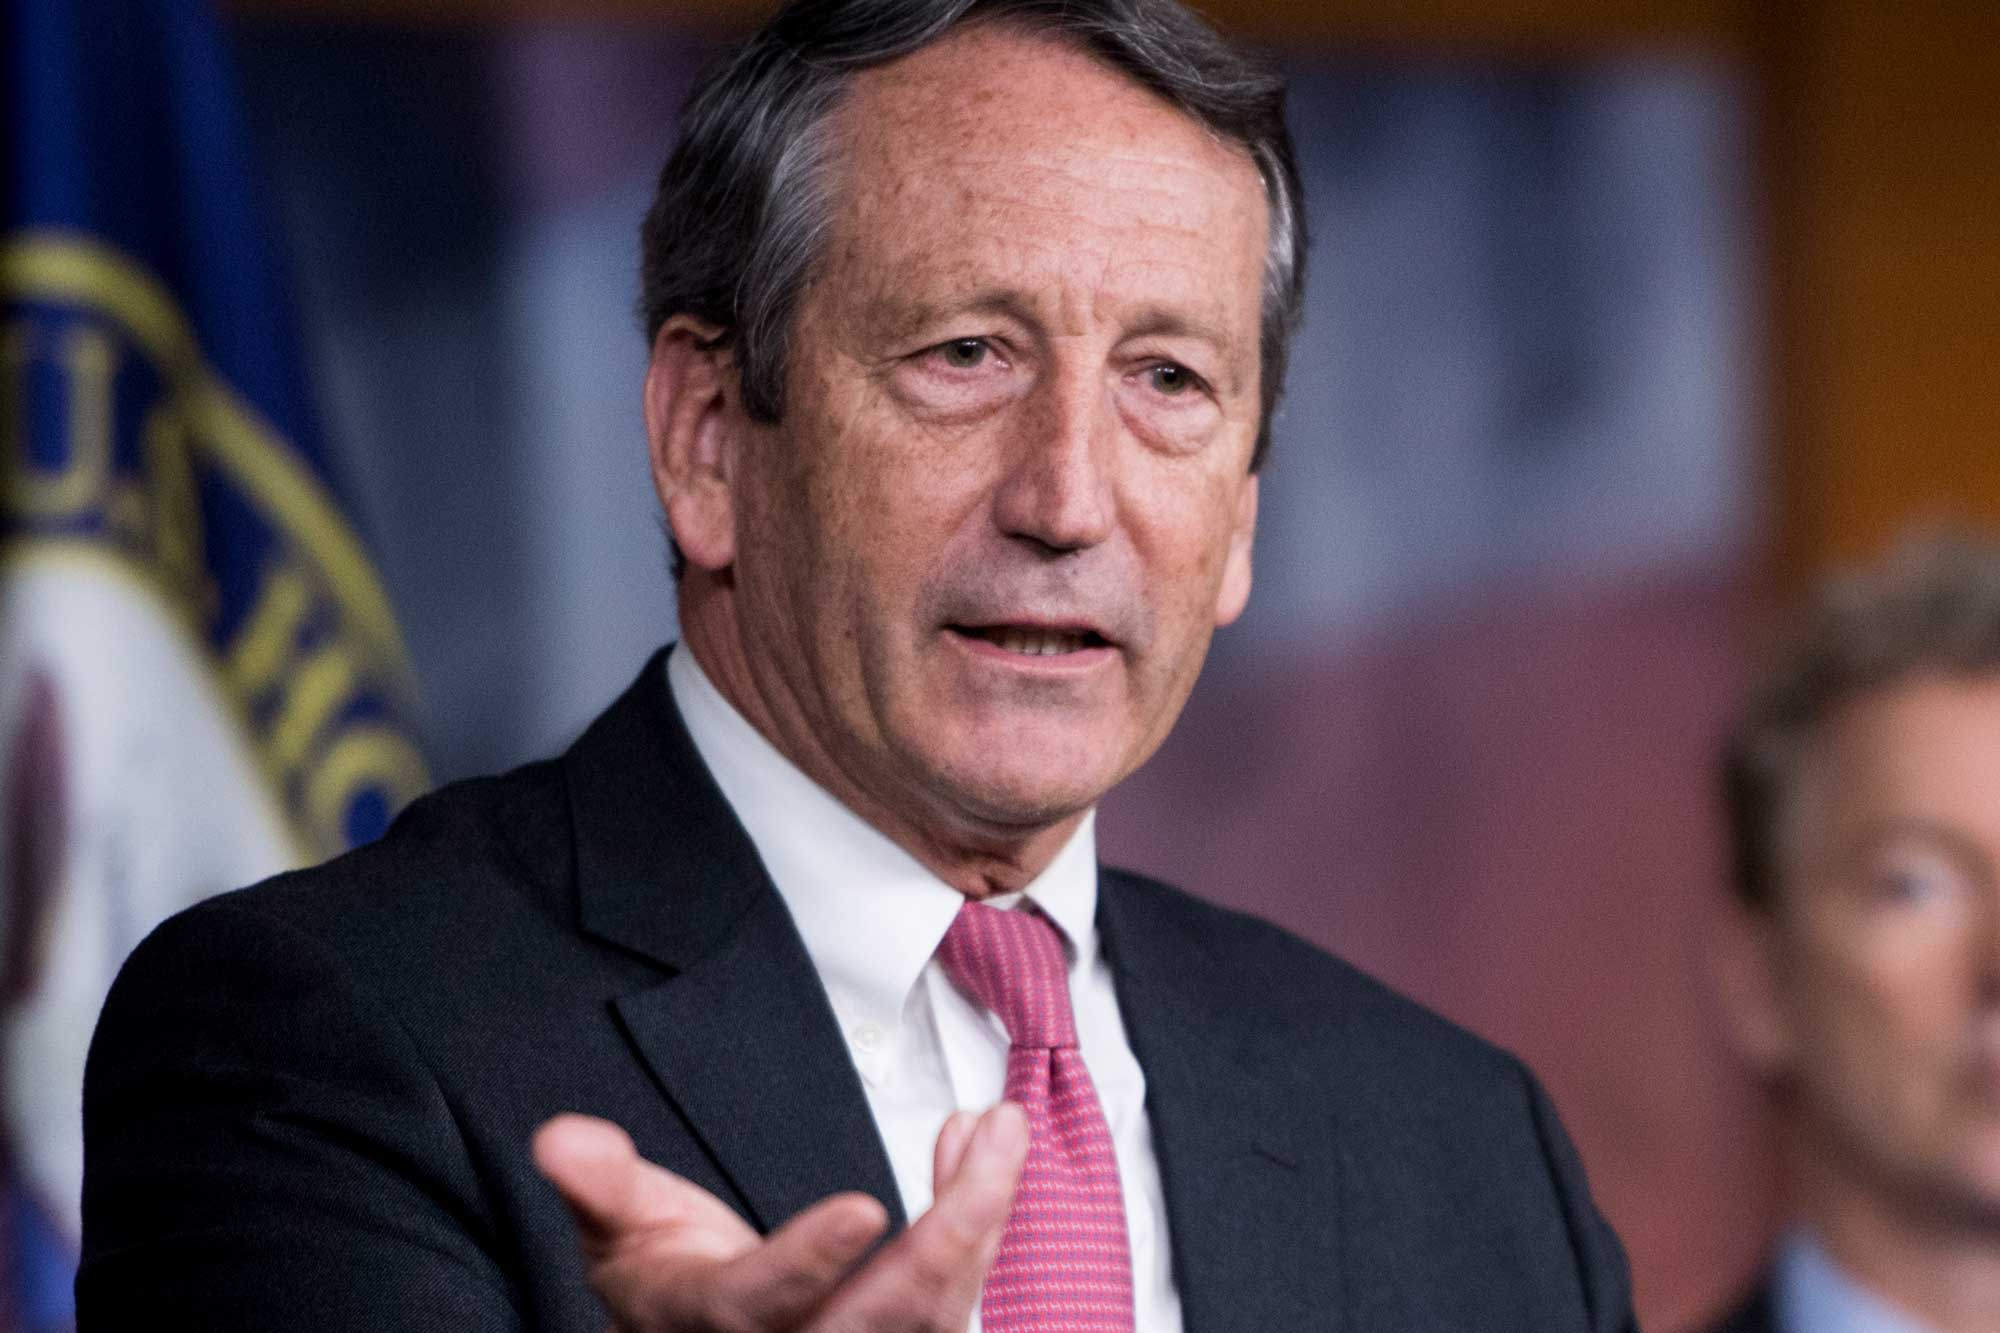 Mark Sanford will mount Republican primary challenge against Trump